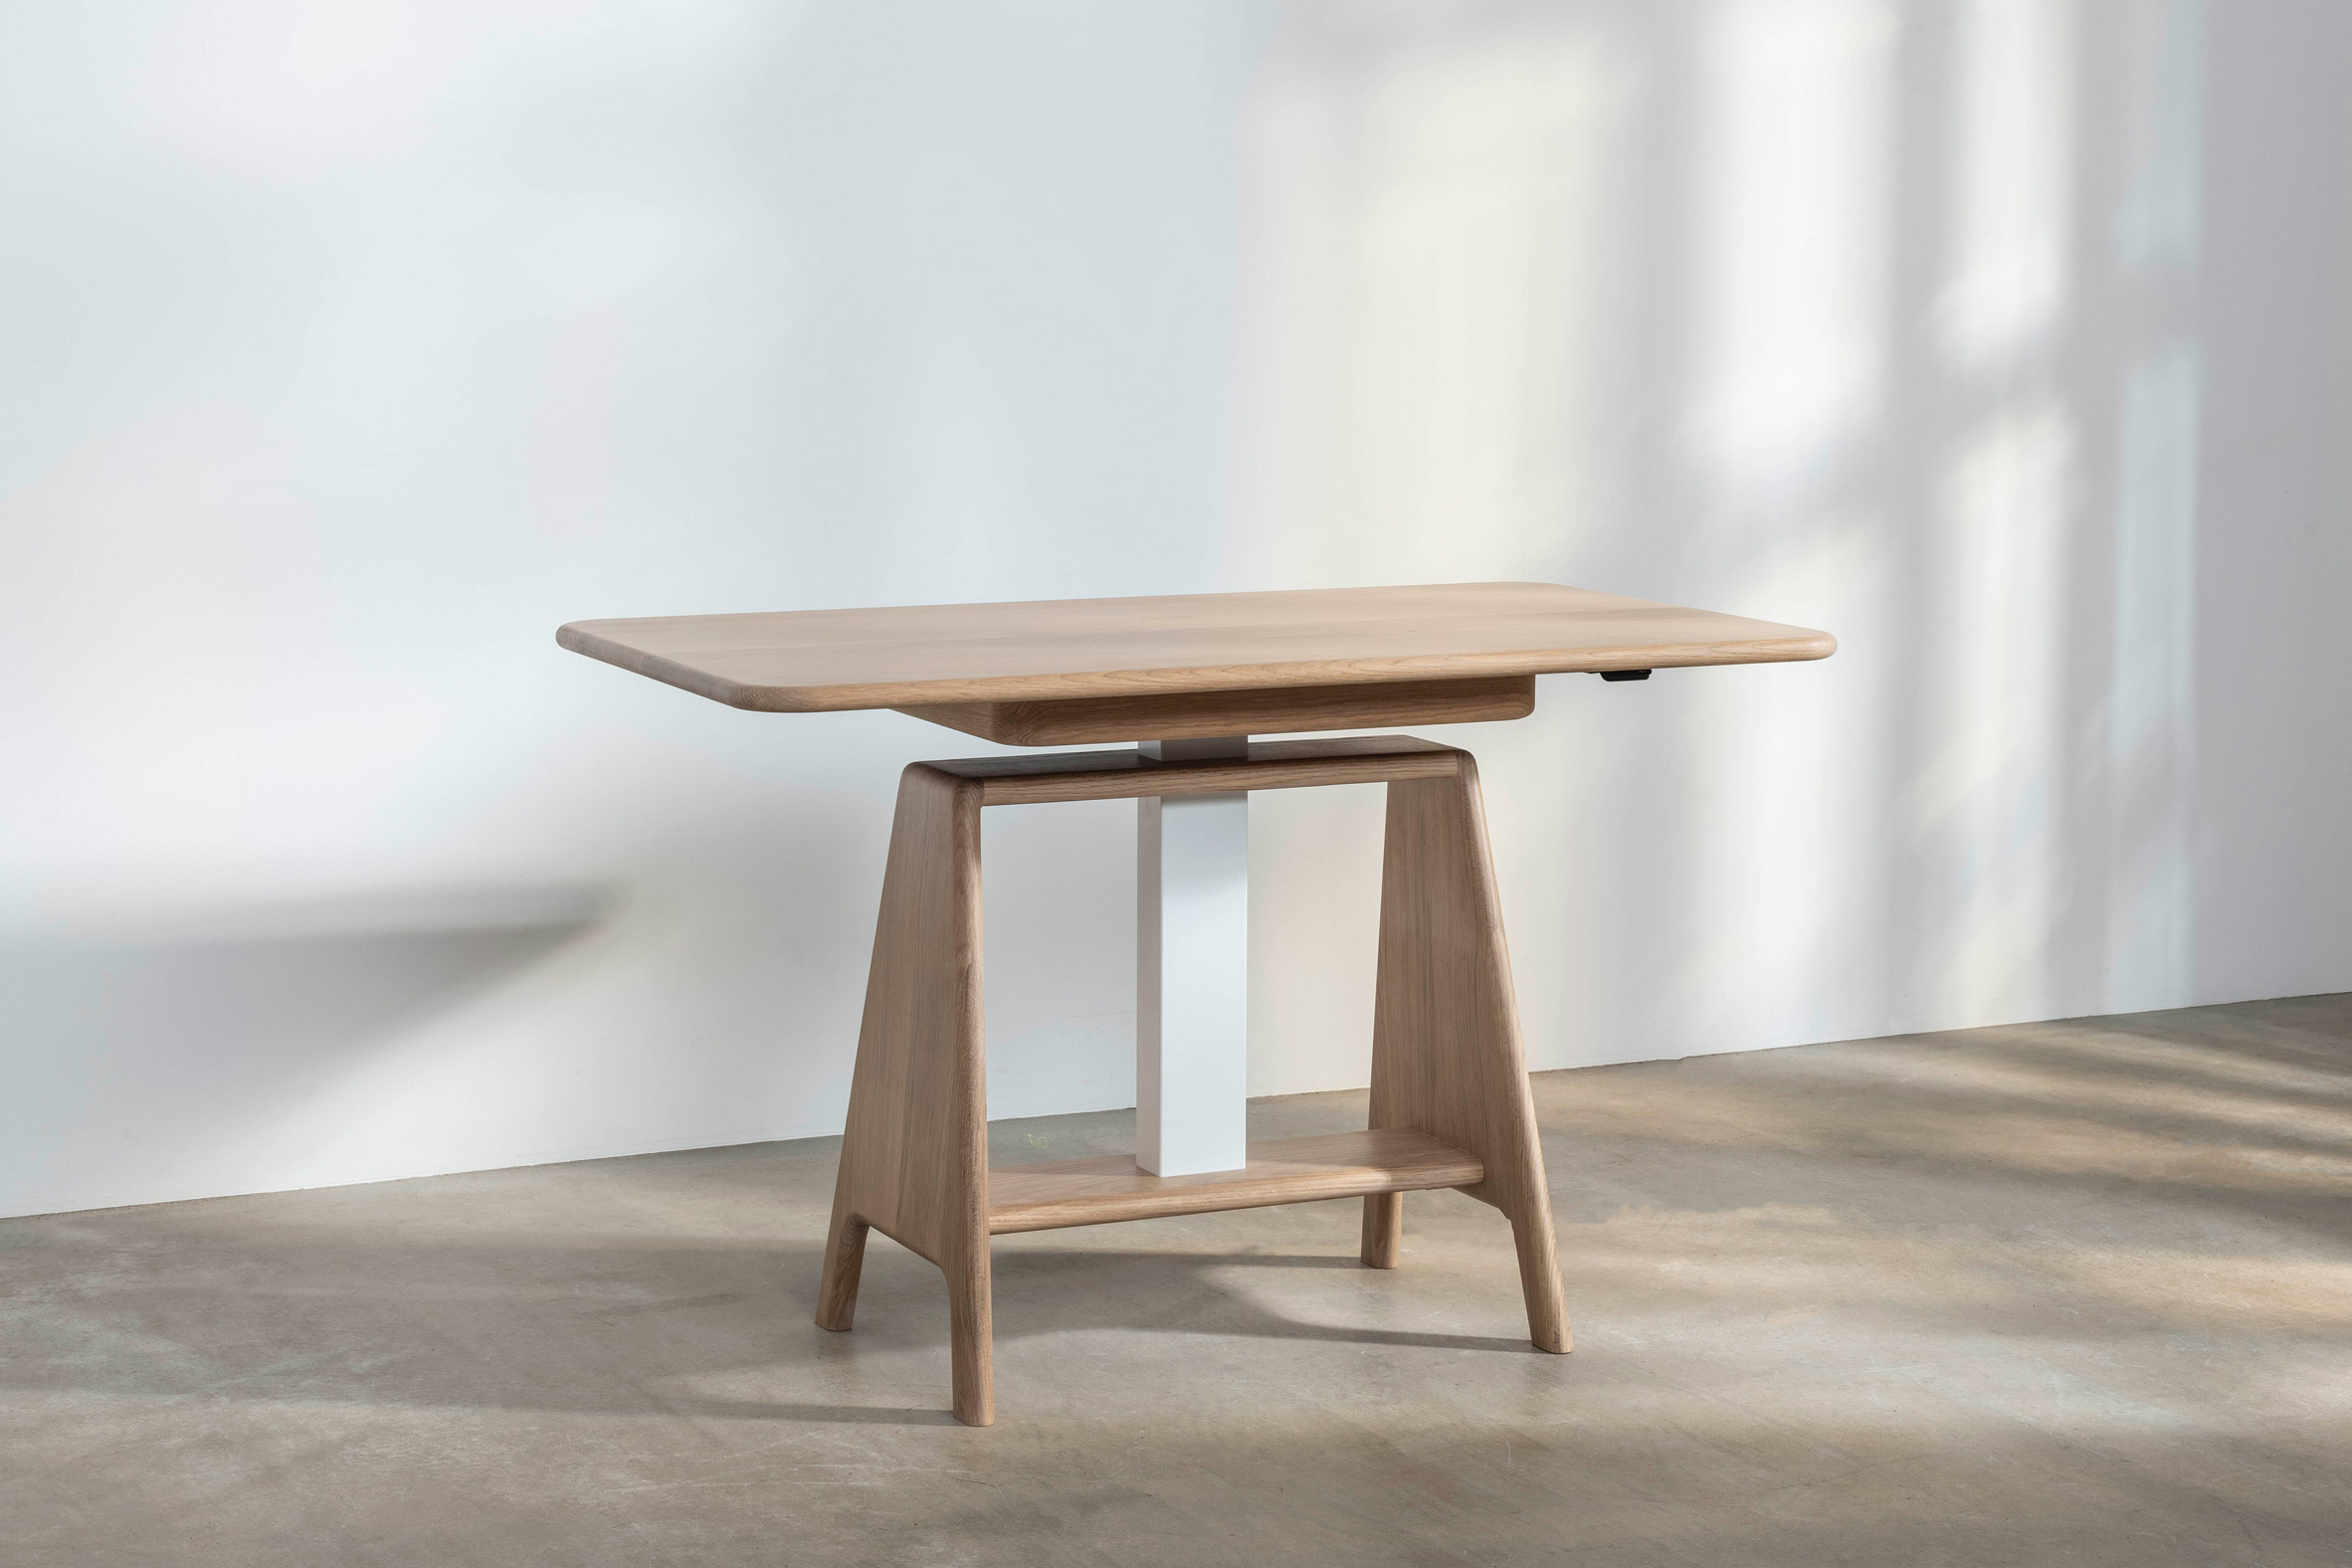 A Noa sit-stand desk by Benchmark with at sitting height